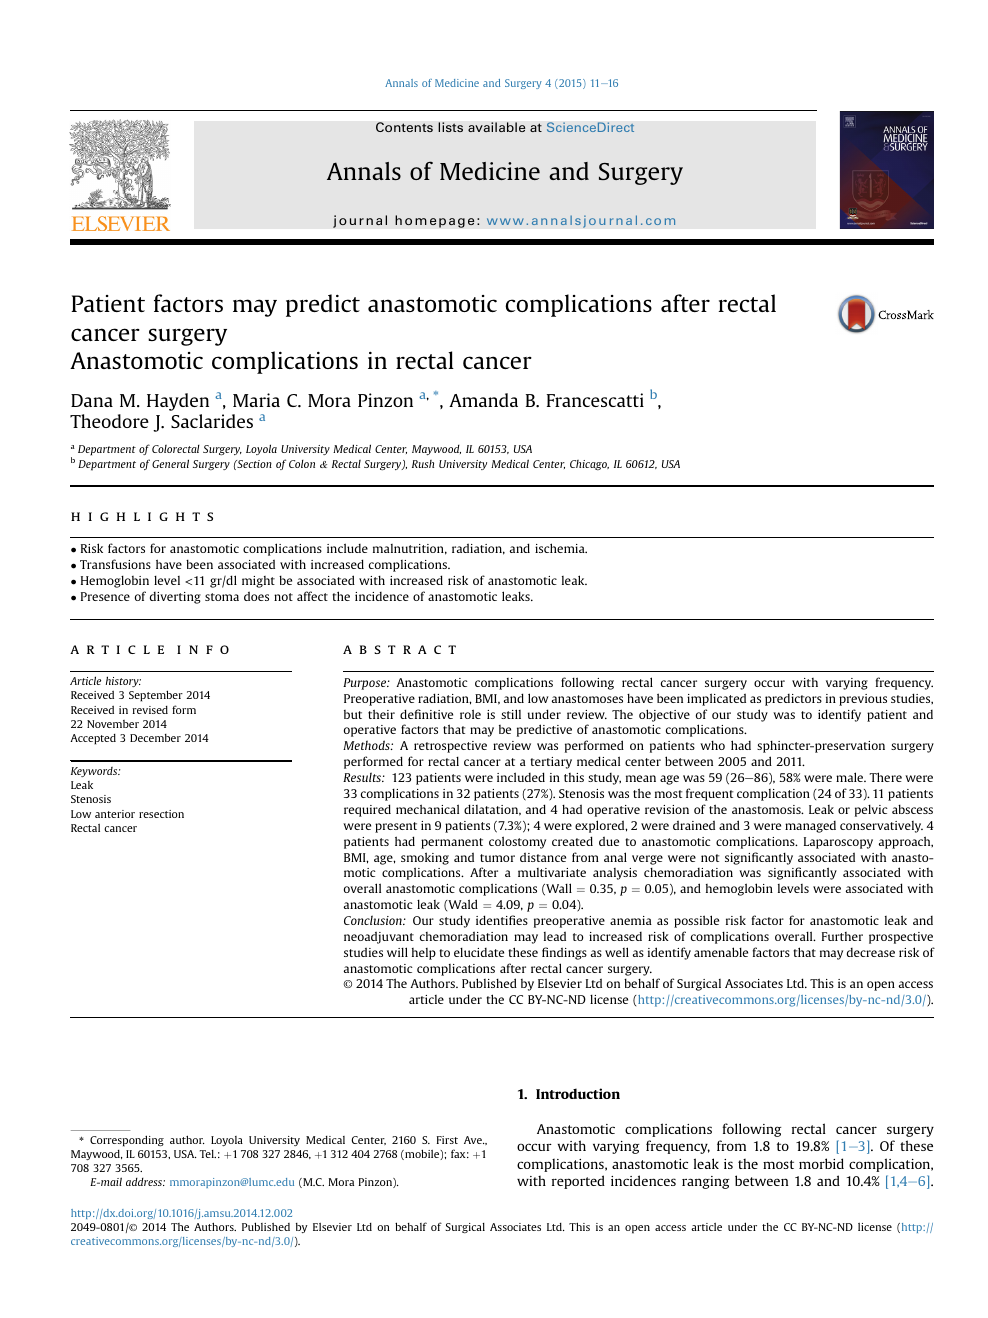 Patient Factors May Predict Anastomotic Complications After Rectal Cancer Surgery Topic Of Research Paper In Health Sciences Download Scholarly Article Pdf And Read For Free On Cyberleninka Open Science Hub